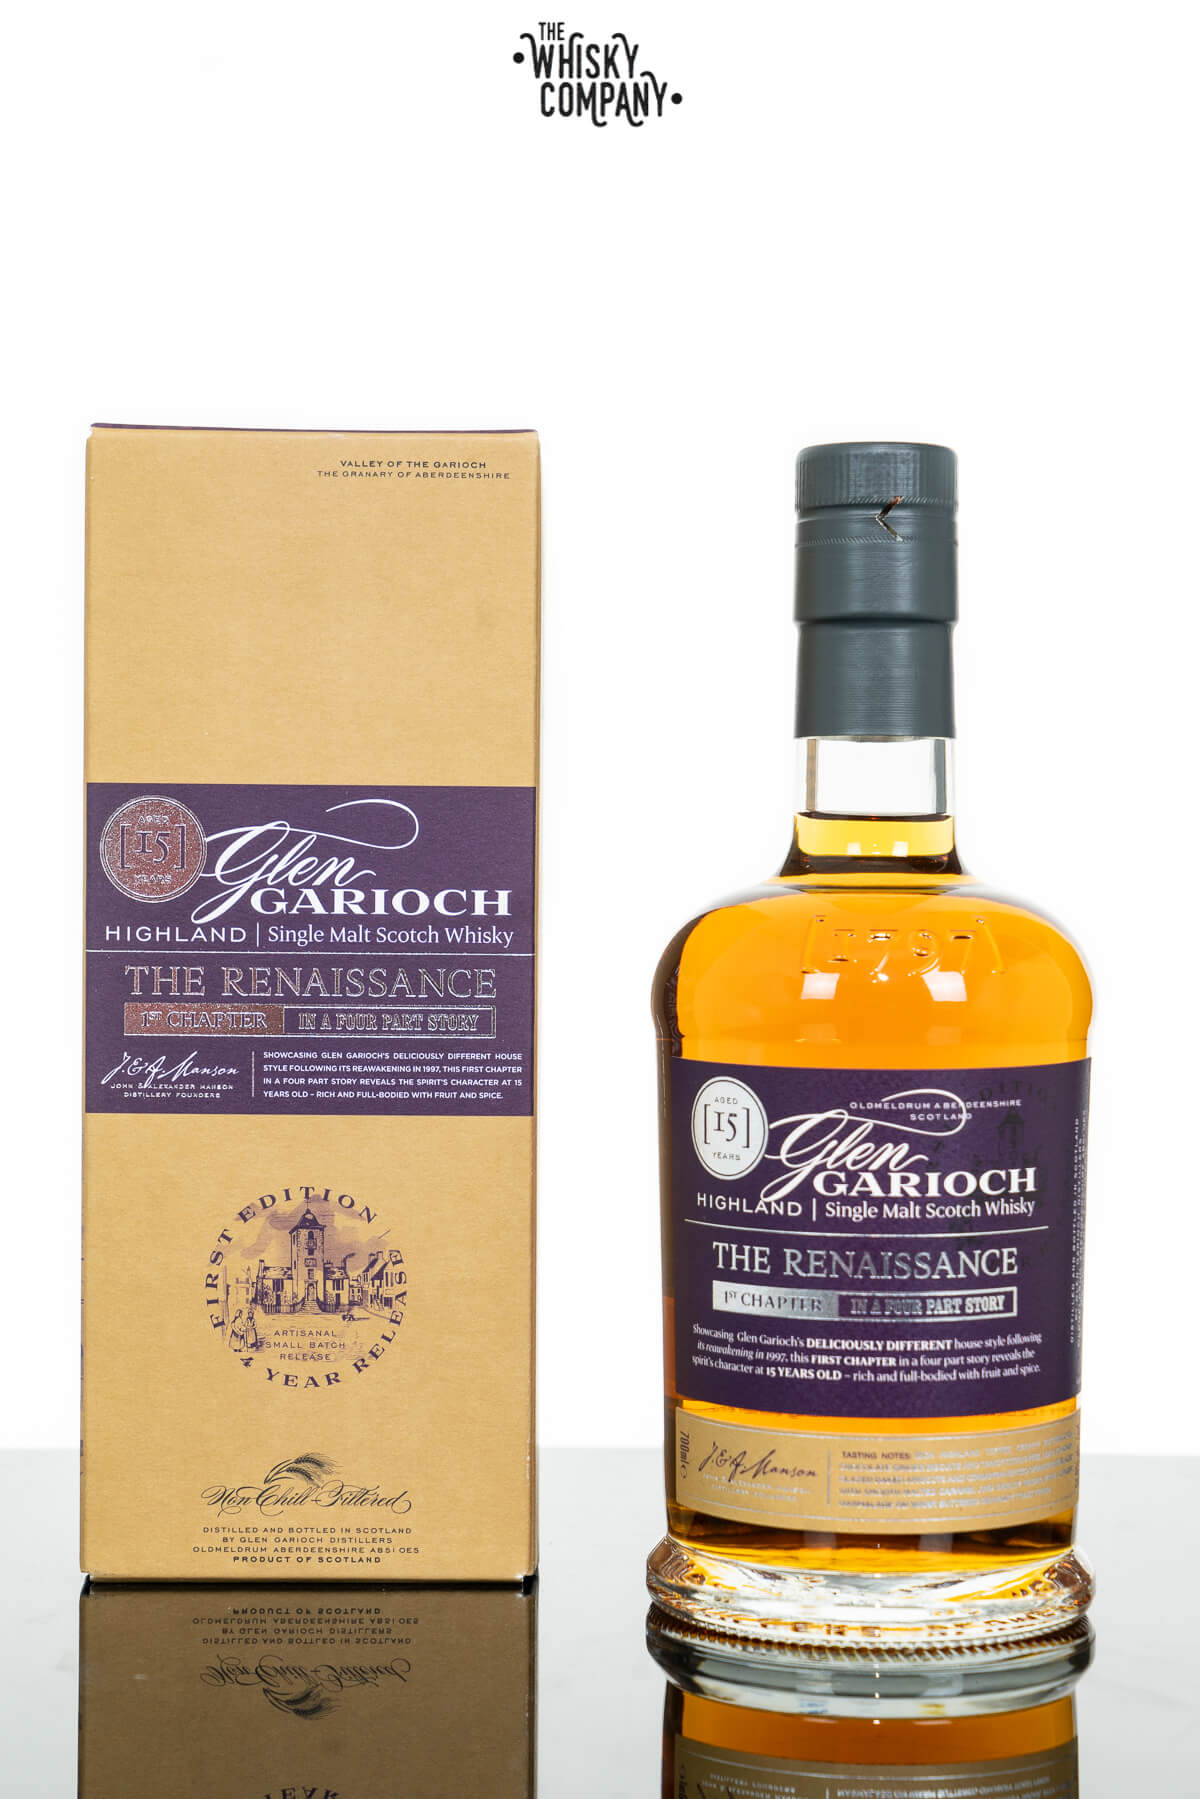 Glen Garioch 15 Years old The Renaissance Single Malt Scotch Whisky (700ml)